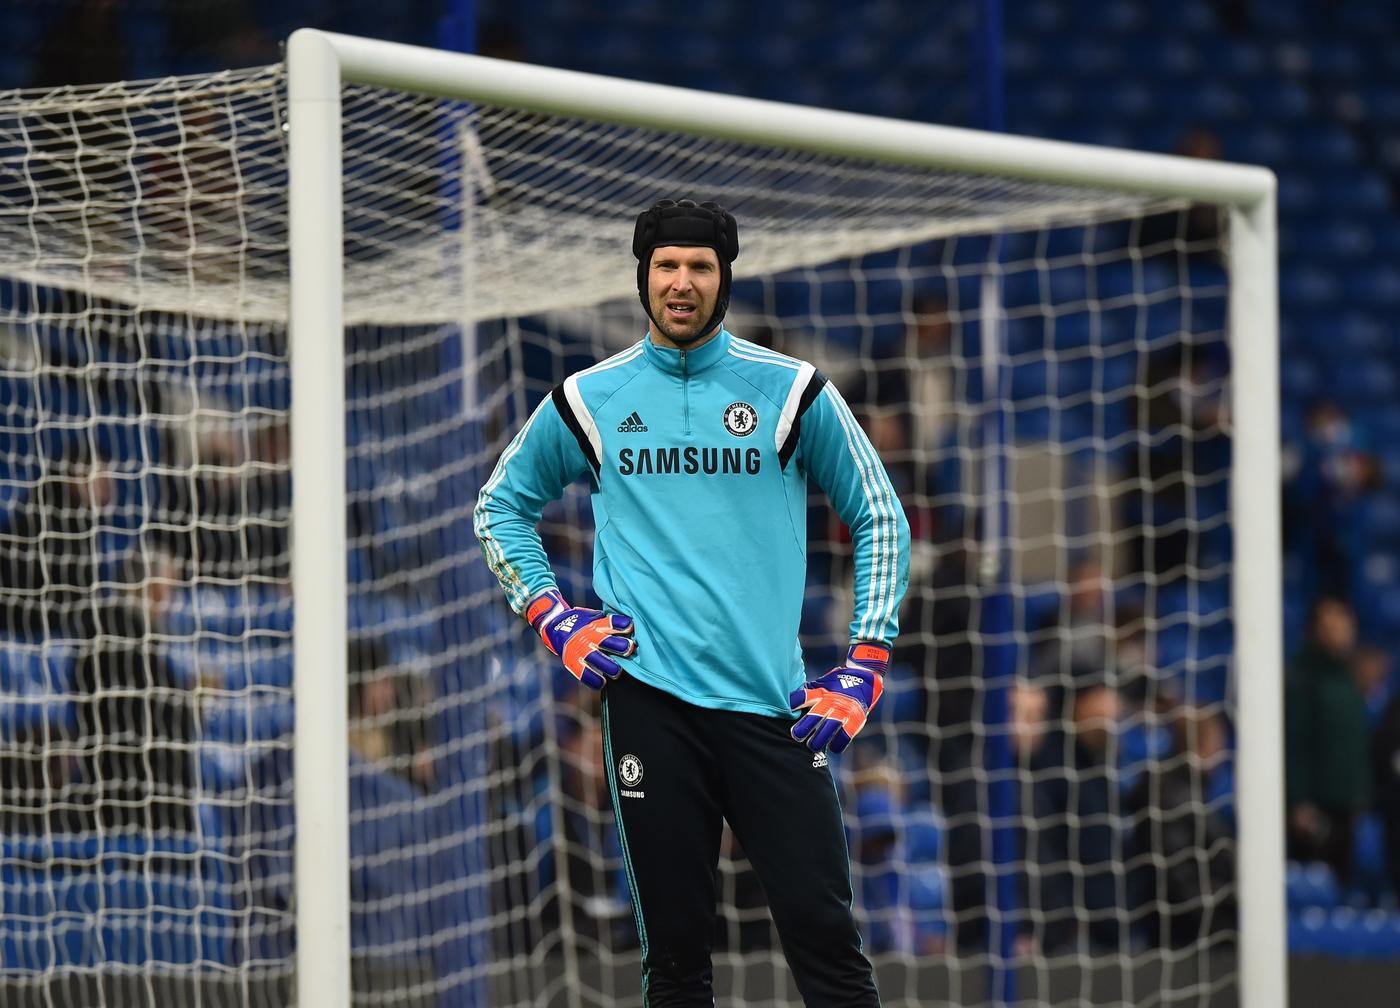 Petr Cech, James Milner and Raheem Sterling: Three Premier League stars who could be set for summer transfers to Arsenal